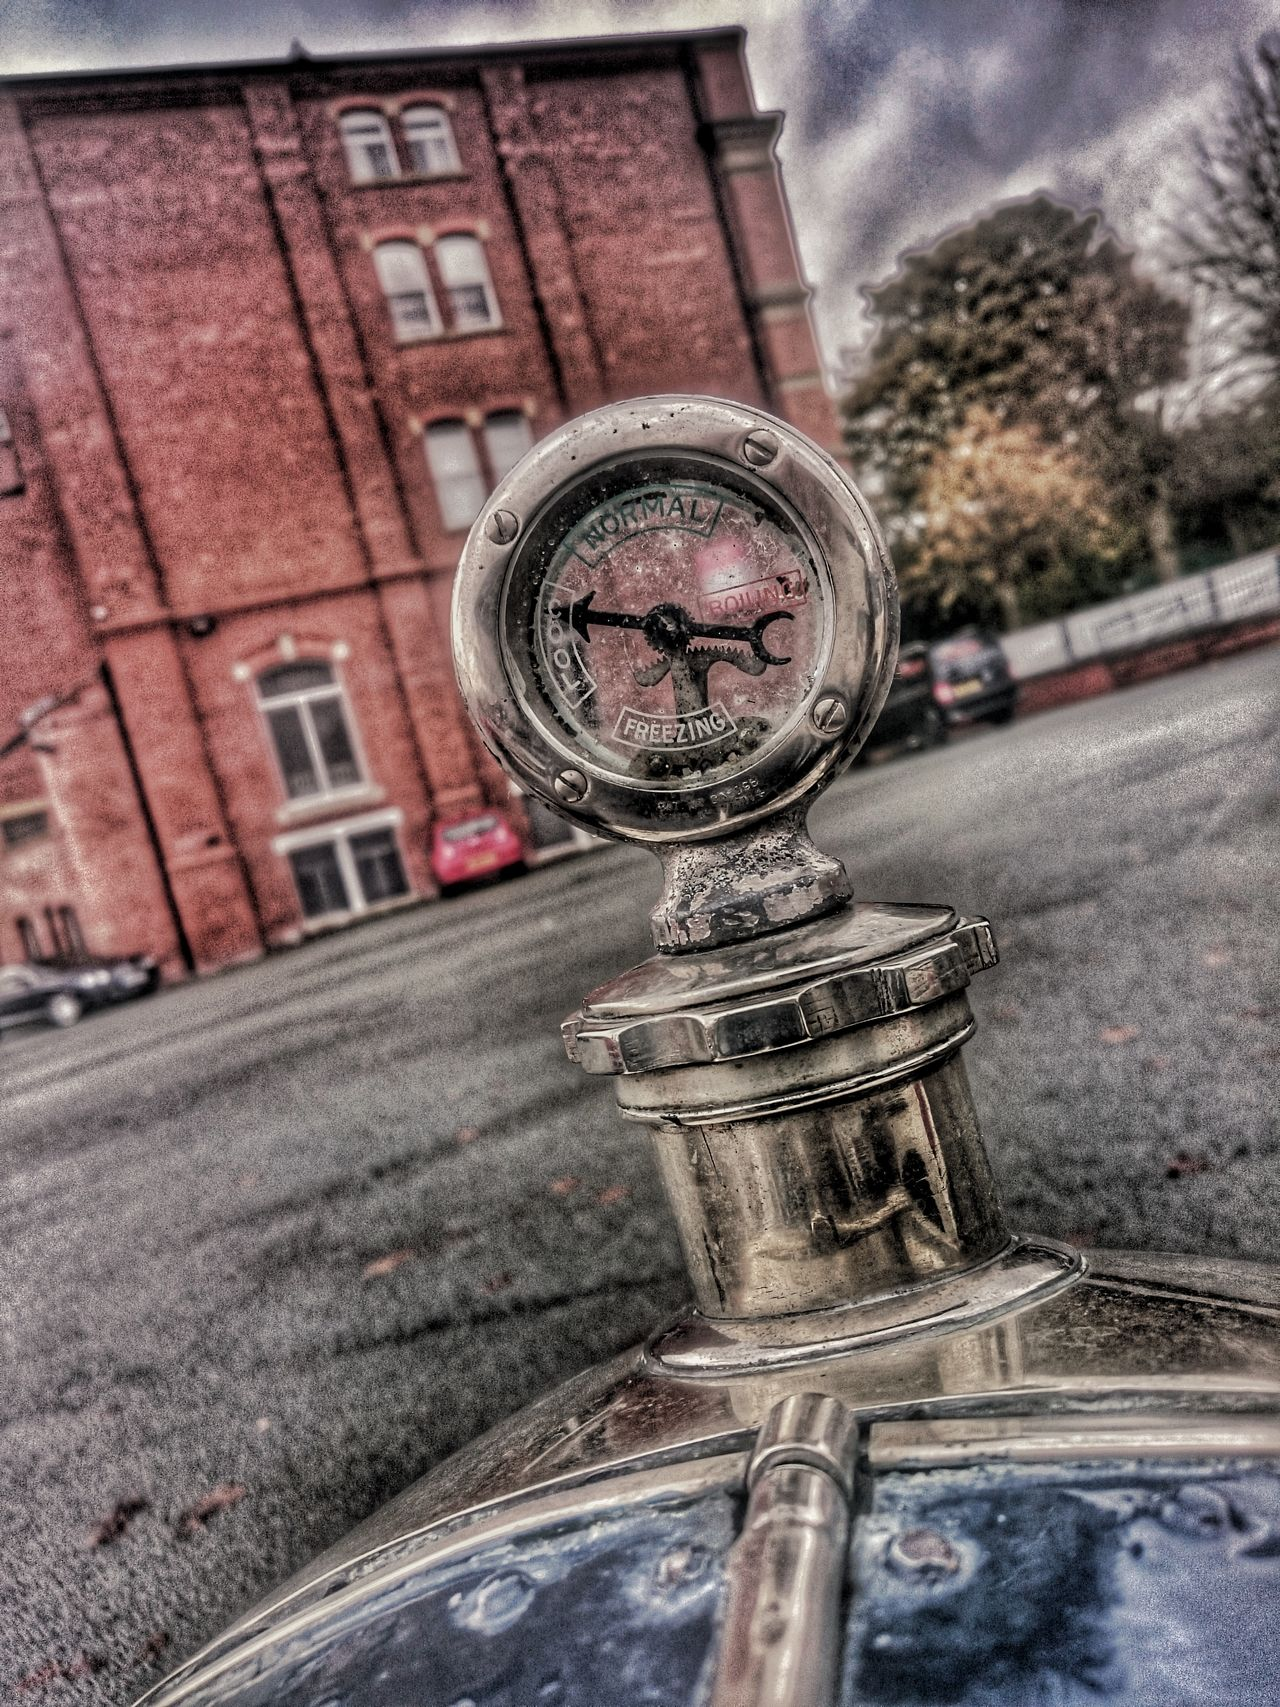 Car Transportation Building Exterior The Drive Guage Temperaturegauge Temperature Gauge Radiatorporn Classic Elegance Meter_gauge Classic Cars Car Parts Classic Car Photography British Made Brass Chrome Times Past Street Hdr Edit The Drive. The Drive